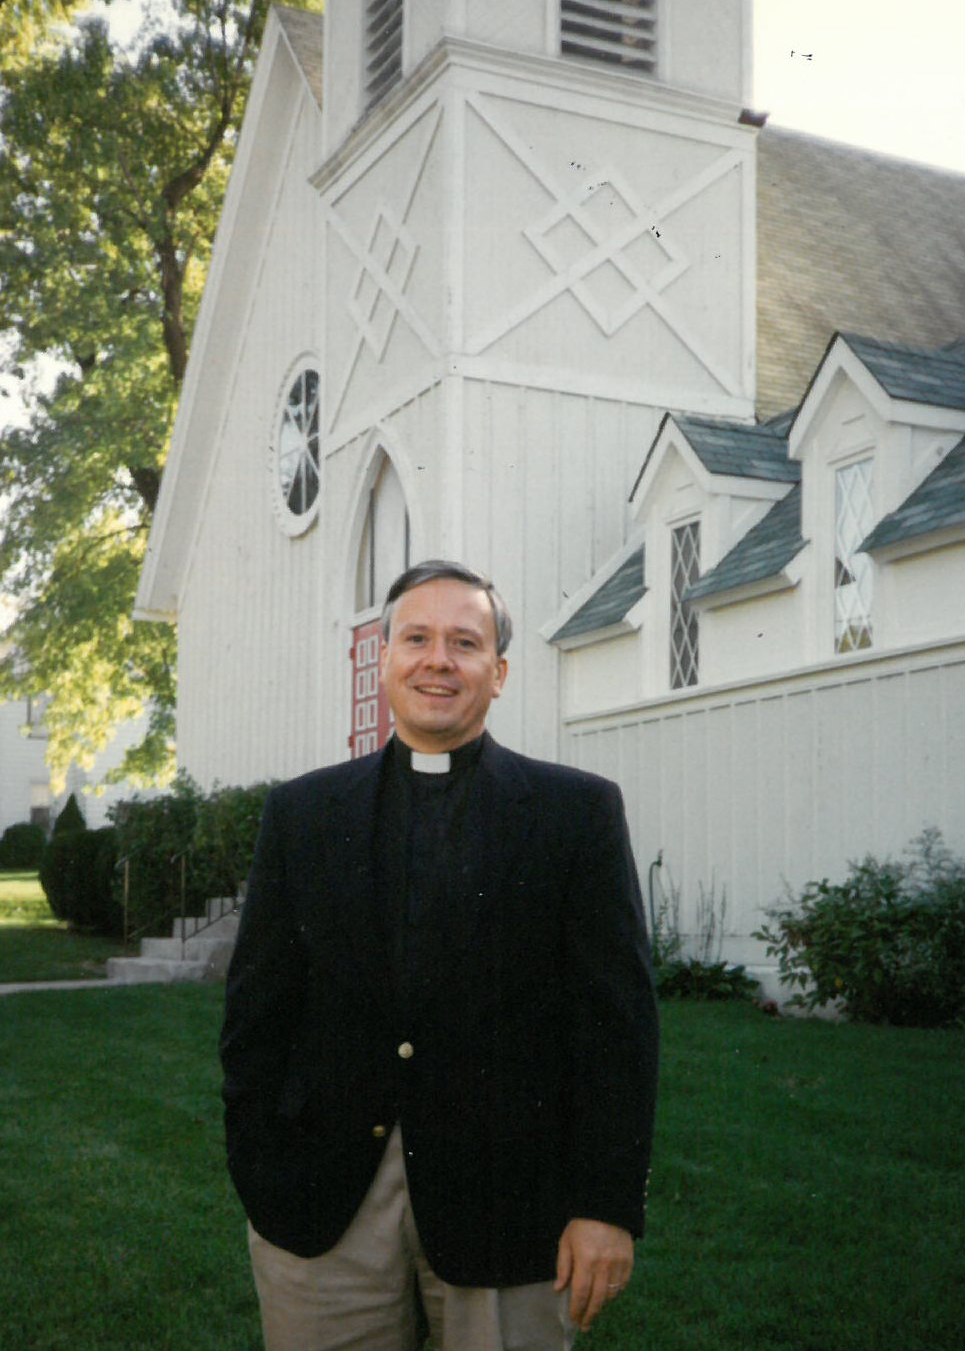 The Rev. James T. Nixon, Vicar from 1992-98, pictured here on the day of the Celebration of New Ministry in 1992.